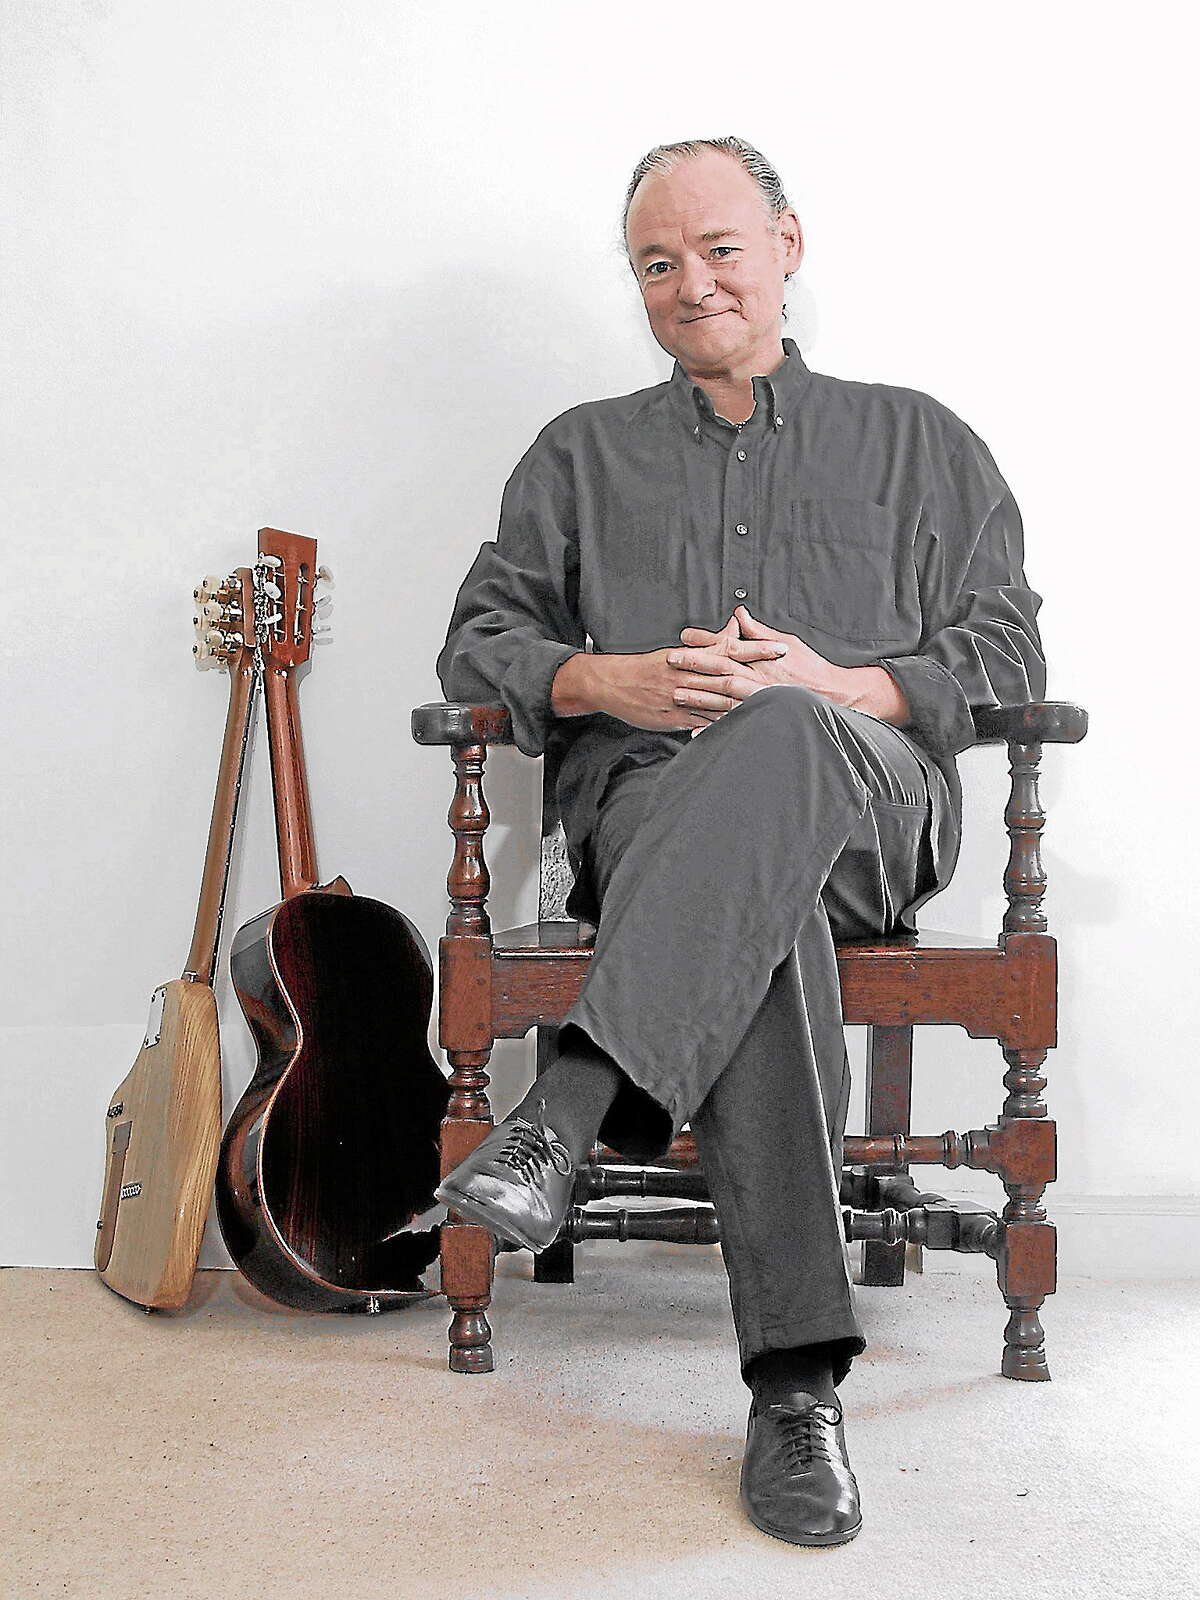 """Photo courtesy of Adrian LeggBritish guitarist Adrian Legg is scheduled to perform at Bridge Street Live Oct. 25. His custom guitars, a hybrid of electric and acoustic, and his finger-style picking technique, make him """"impossible to categorize."""""""